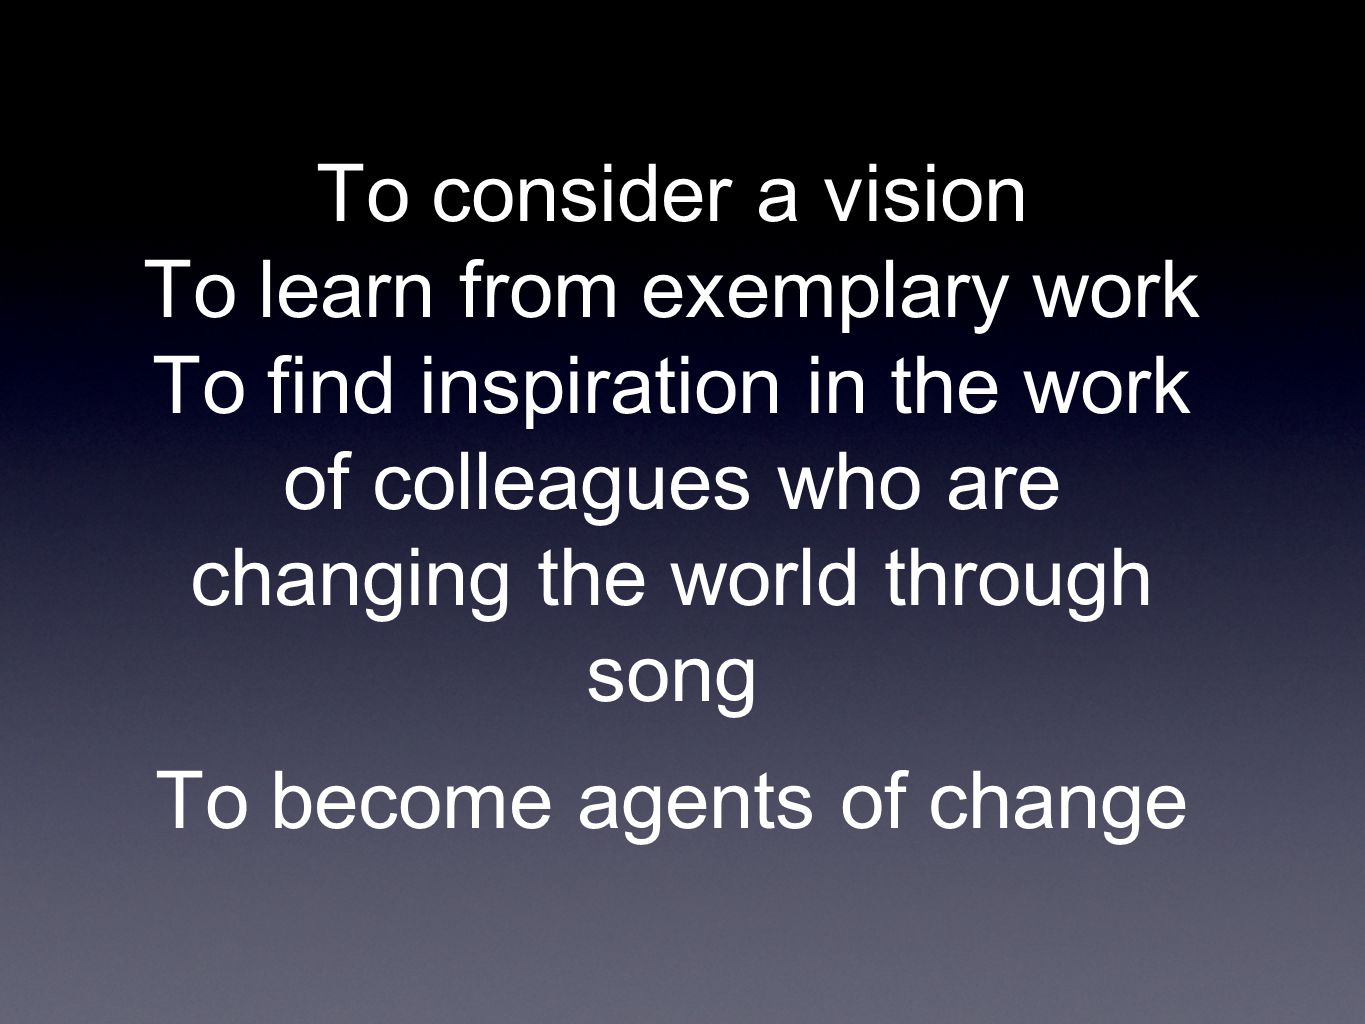 To consider a vision To learn from exemplary work To find inspiration in the work of colleagues who are changing the world through song To become agents of change